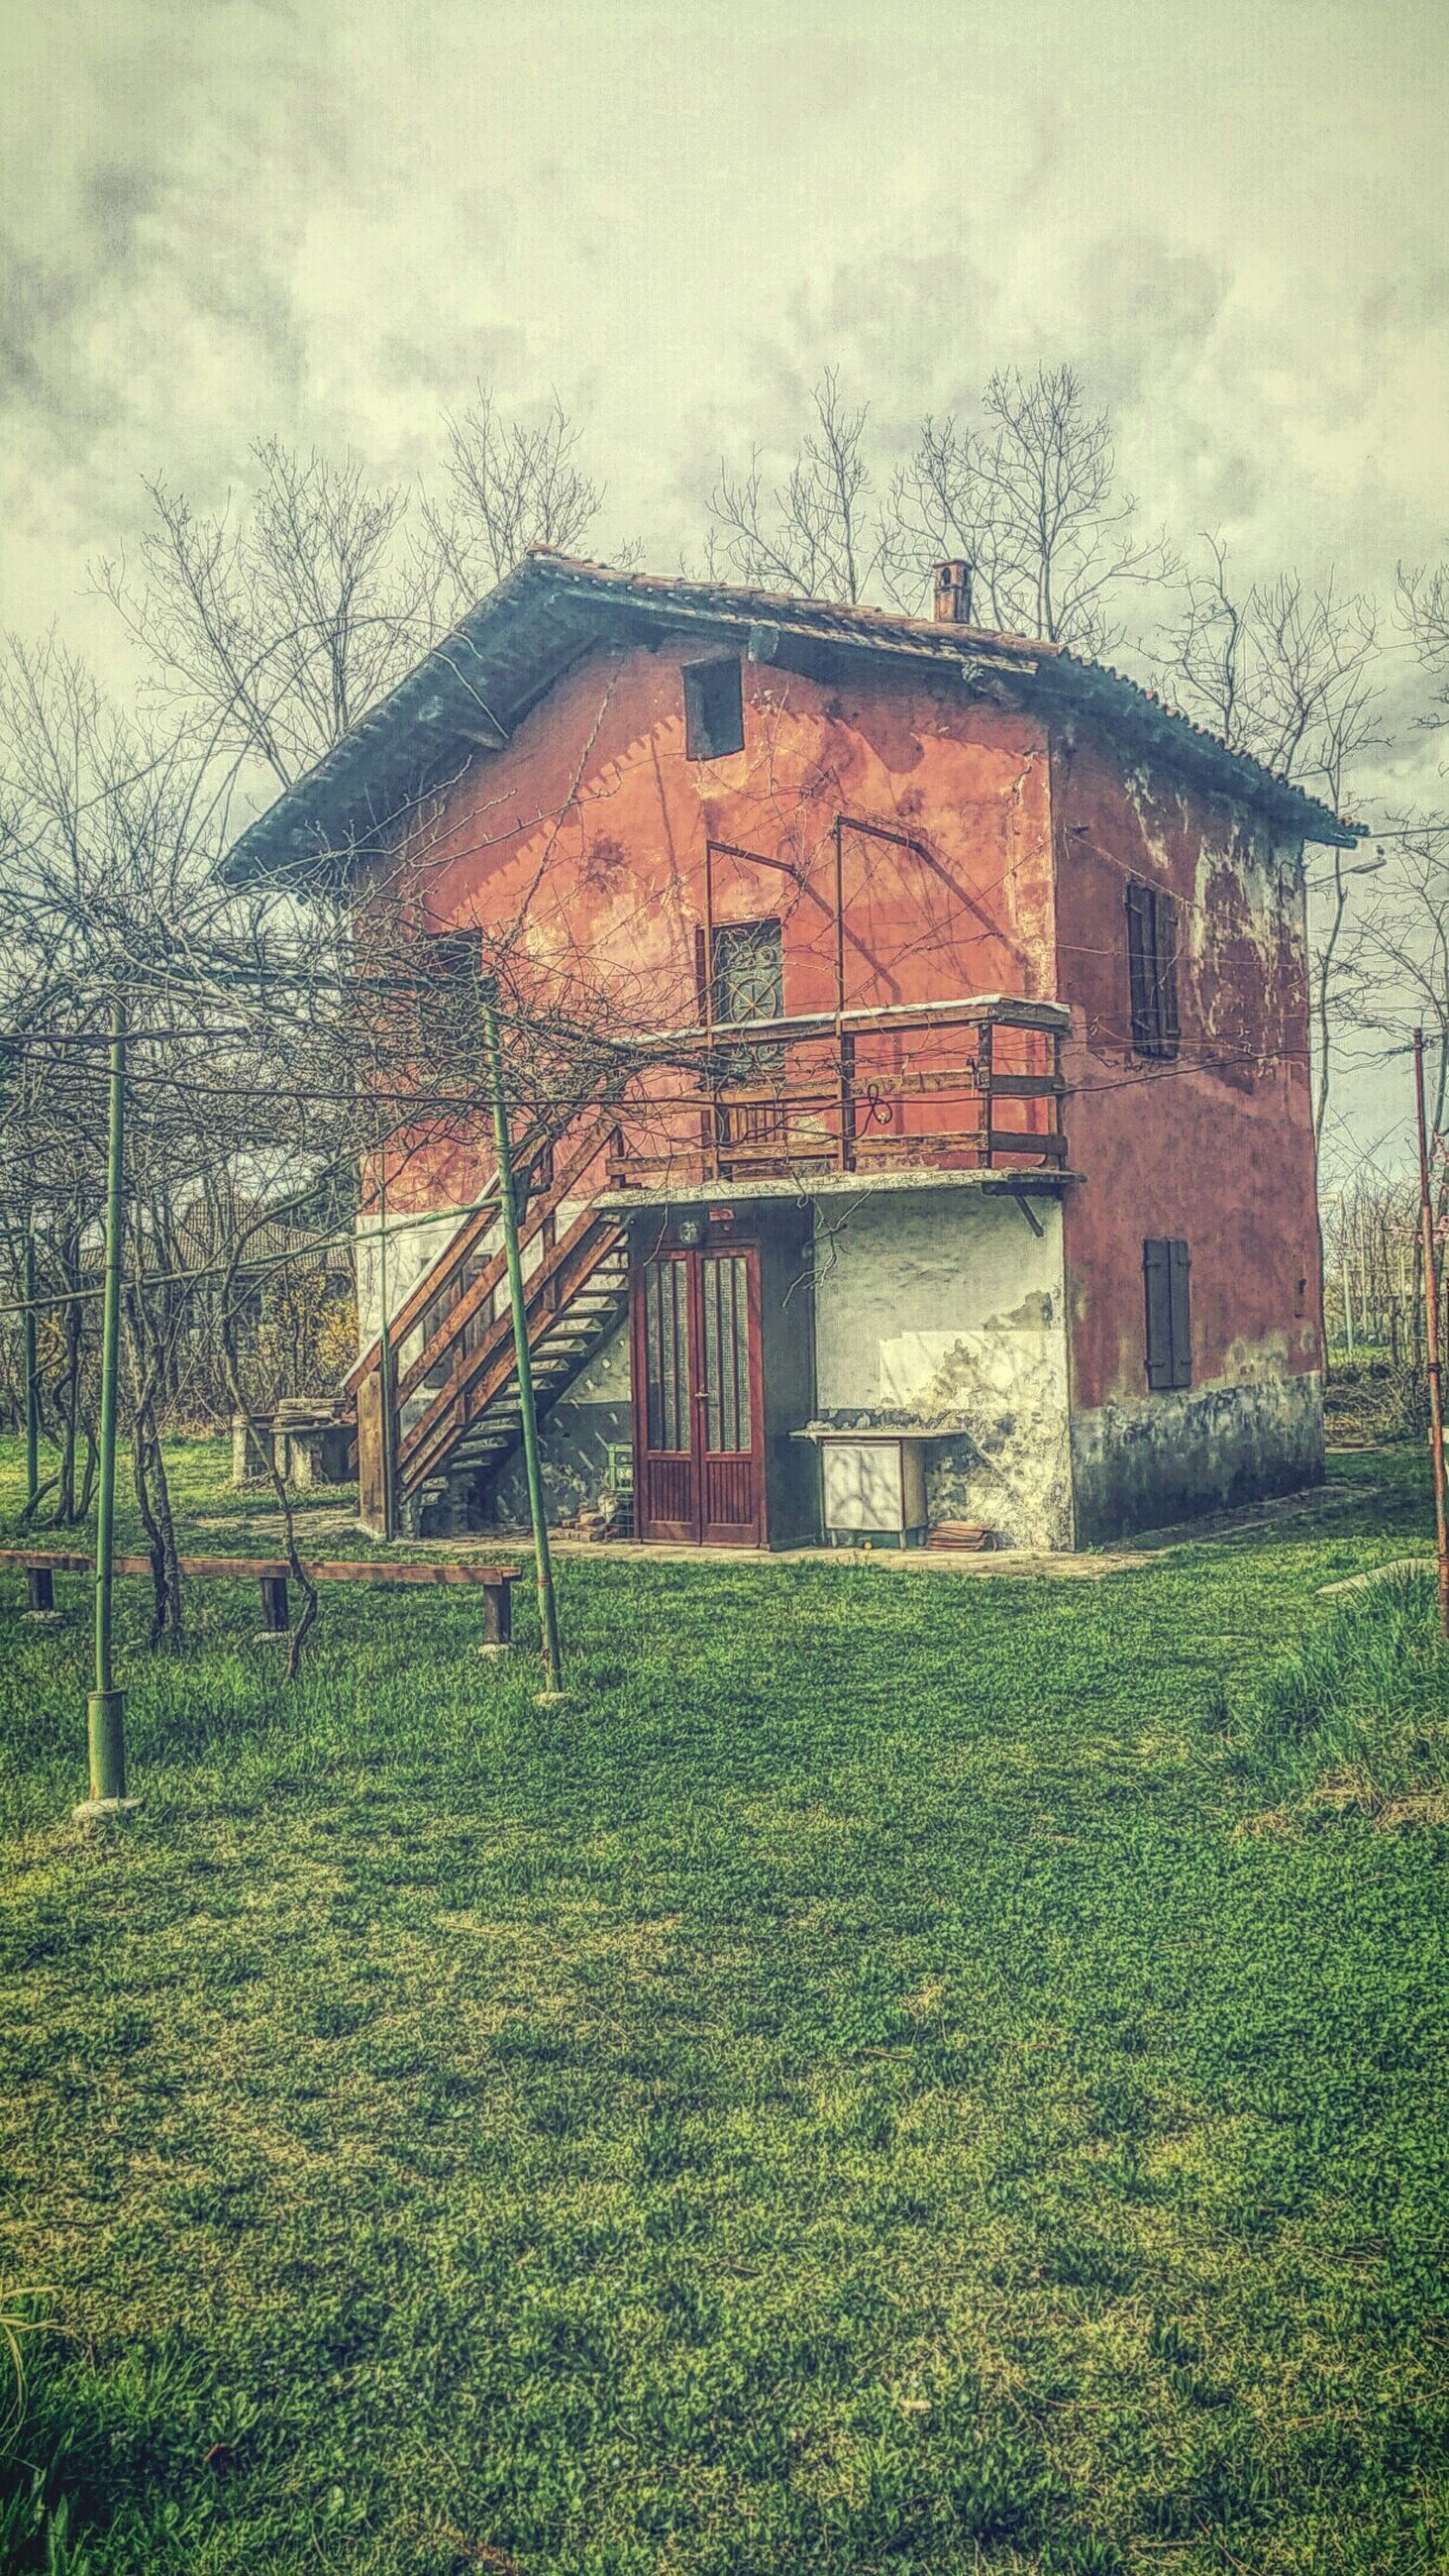 architecture, building exterior, built structure, grass, sky, house, tree, bare tree, residential structure, field, residential building, day, cloud - sky, outdoors, plant, window, no people, growth, abandoned, nature